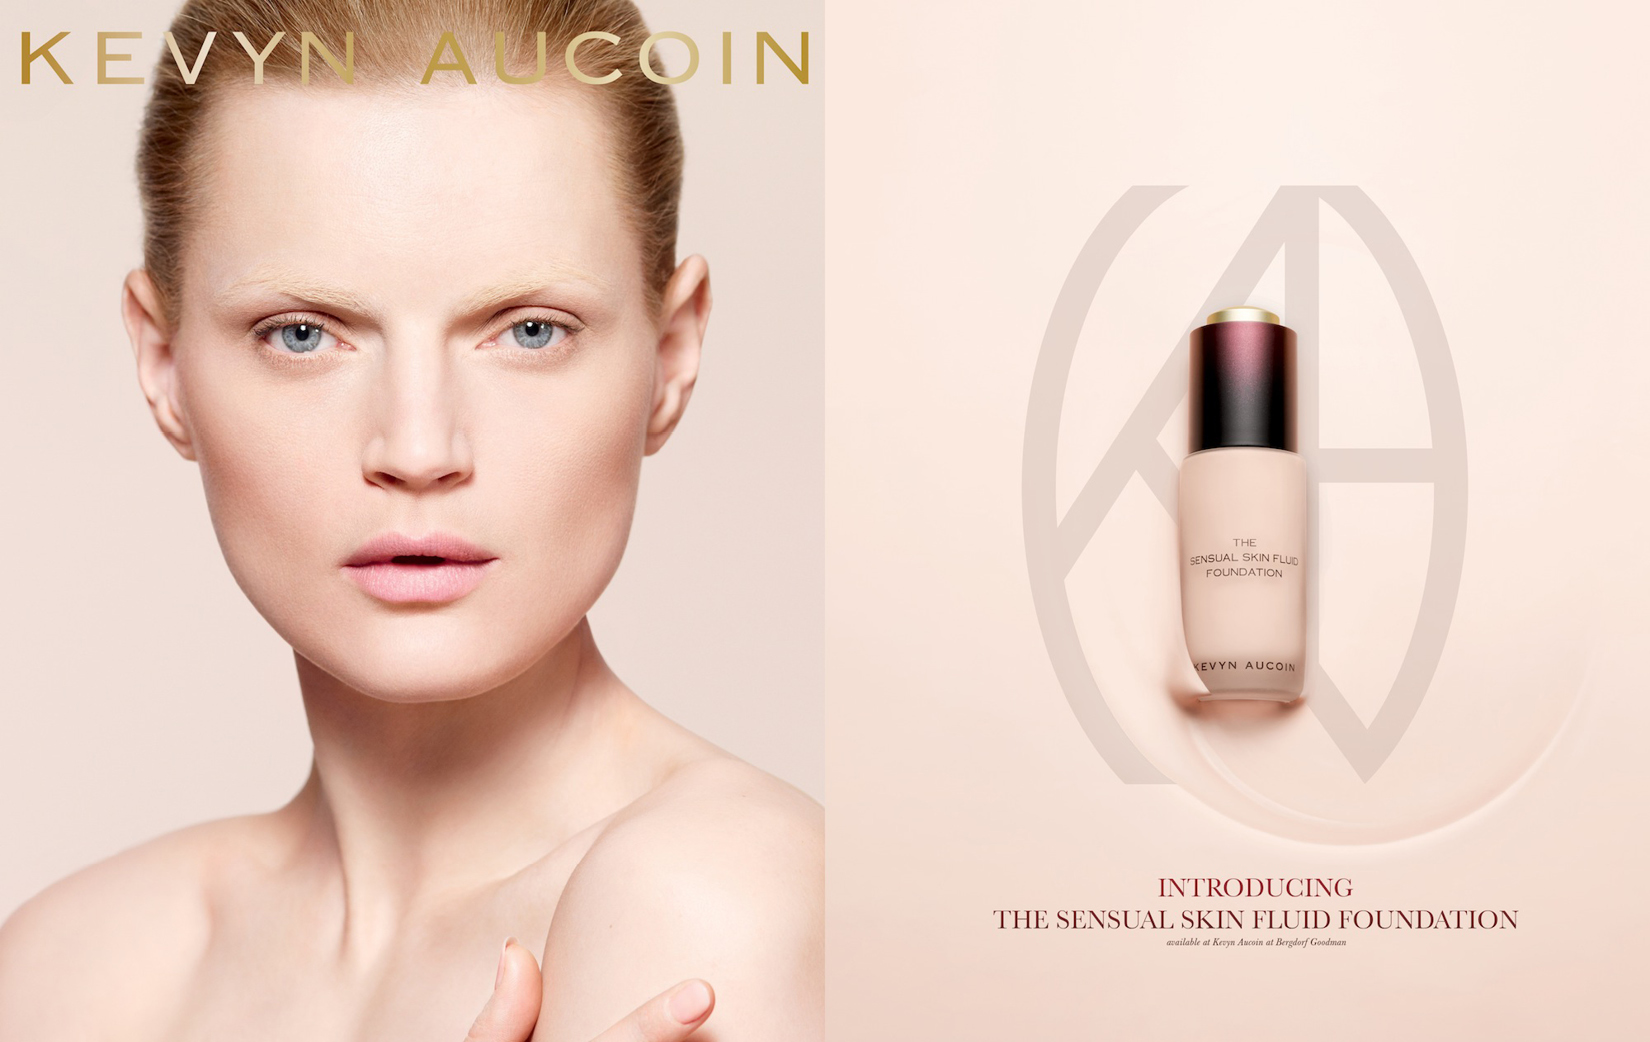 Kevyn Aucoin's new logo and skin fluid foundation package were designed by DTE.